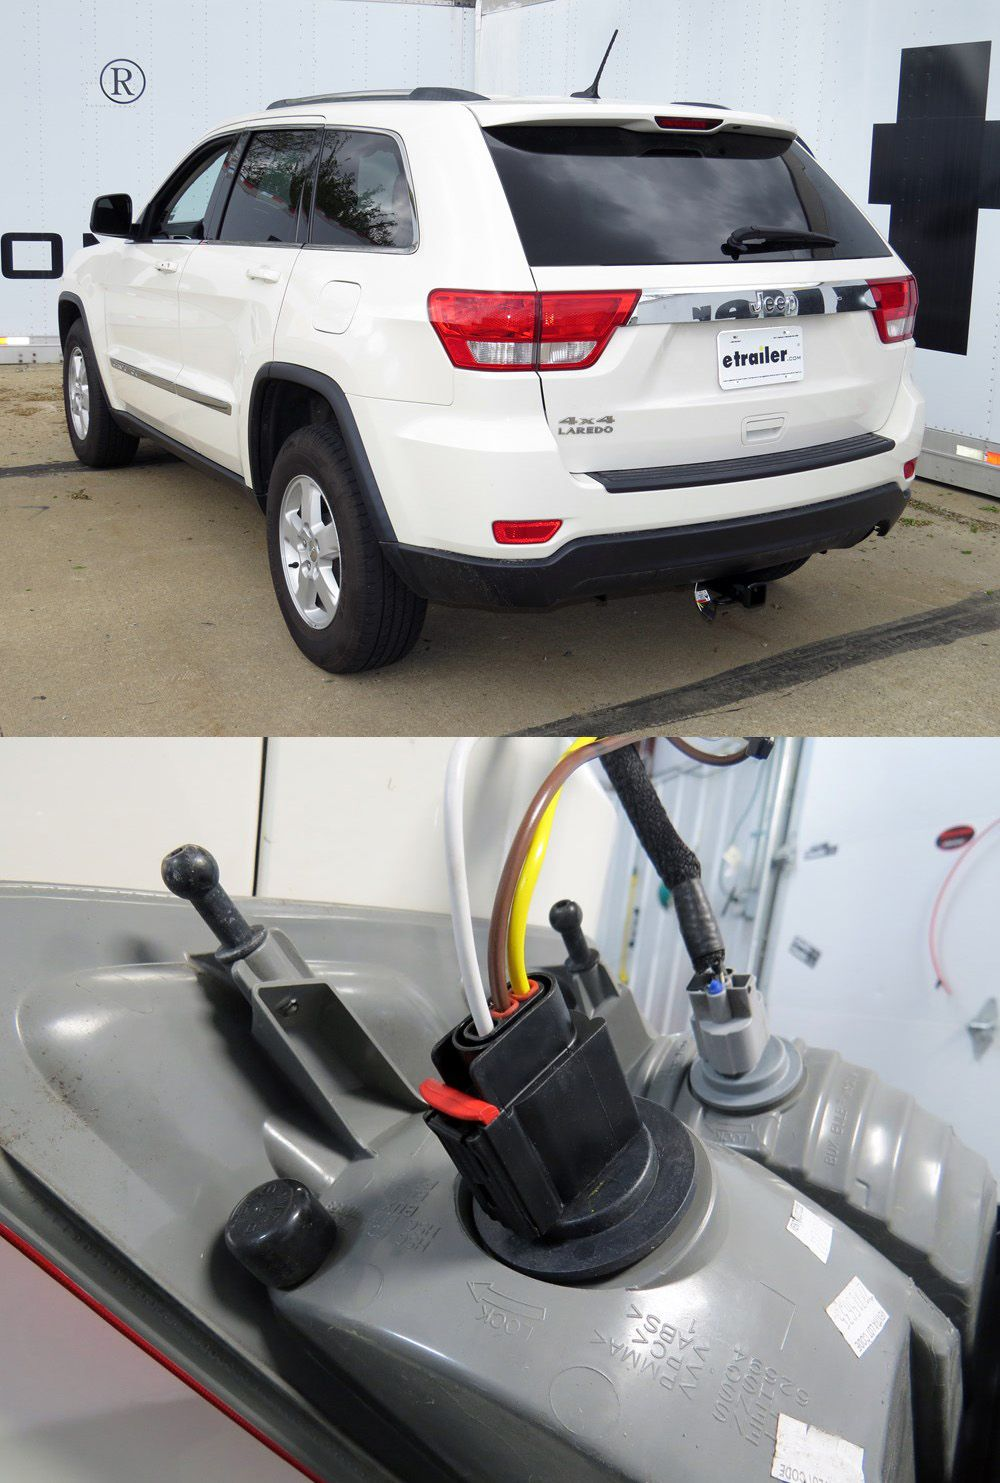 hight resolution of tow ready custom fit vehicle wiring for the grand cherokee by jeep watch the video of the quick and easy installation provides a 4 way flat trailer